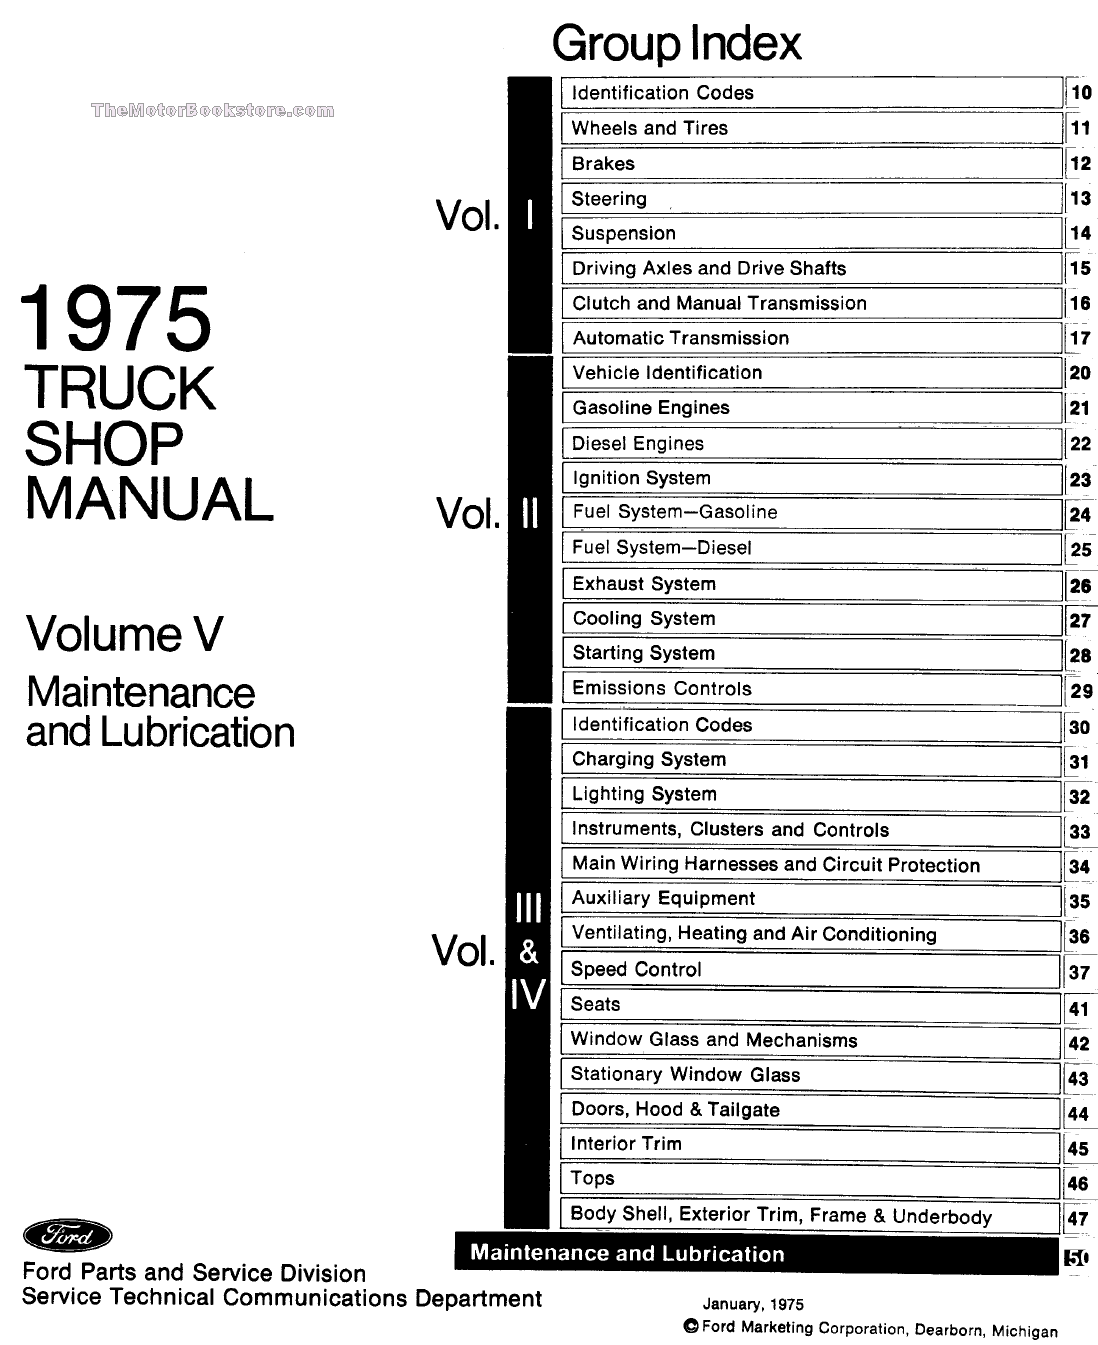 1975 Ford Truck Factory Shop Manual (5-Volume Set)